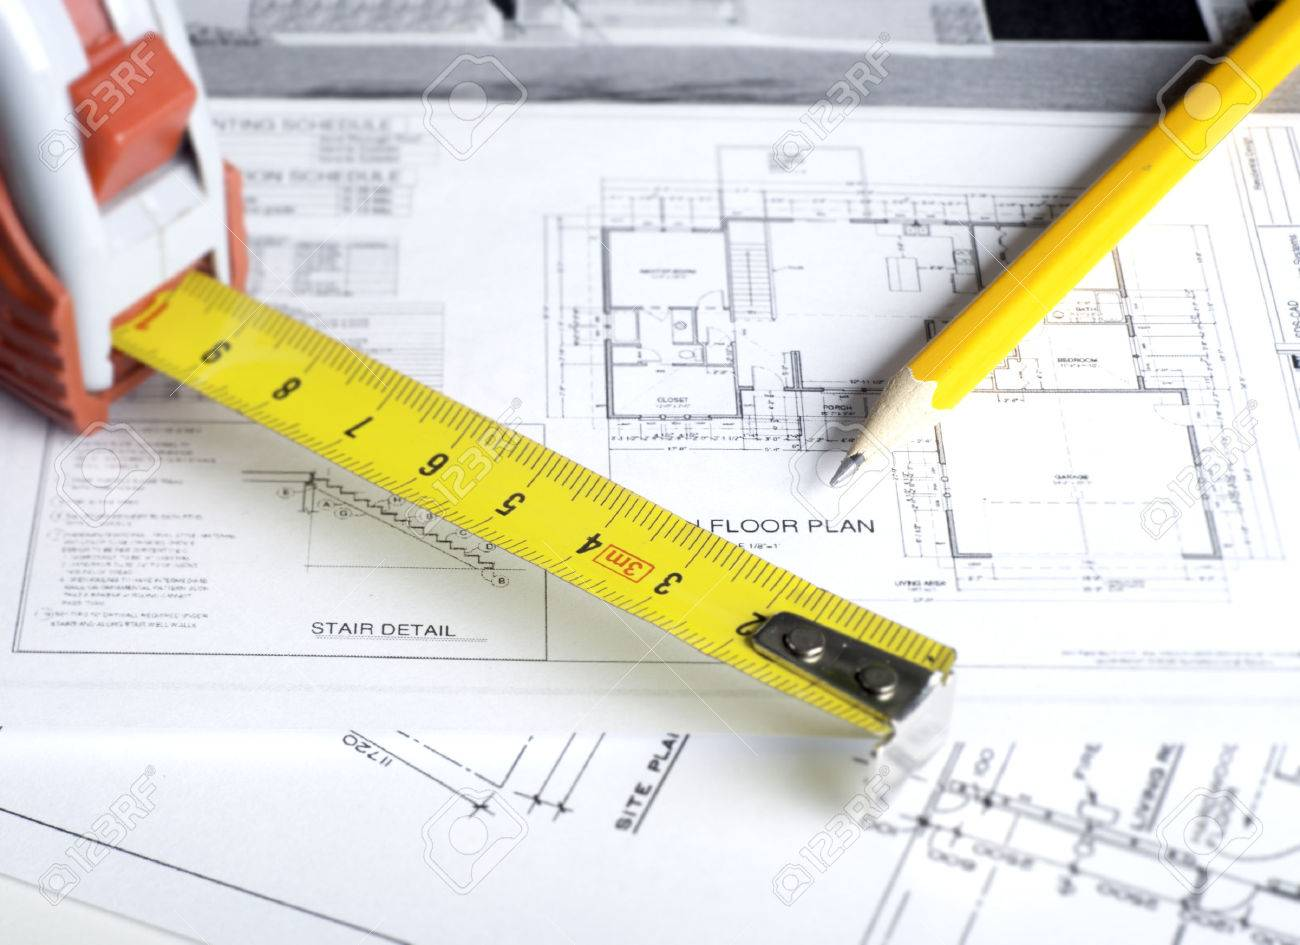 Construction planning drawings on the table and two yellow pencils - 35682736